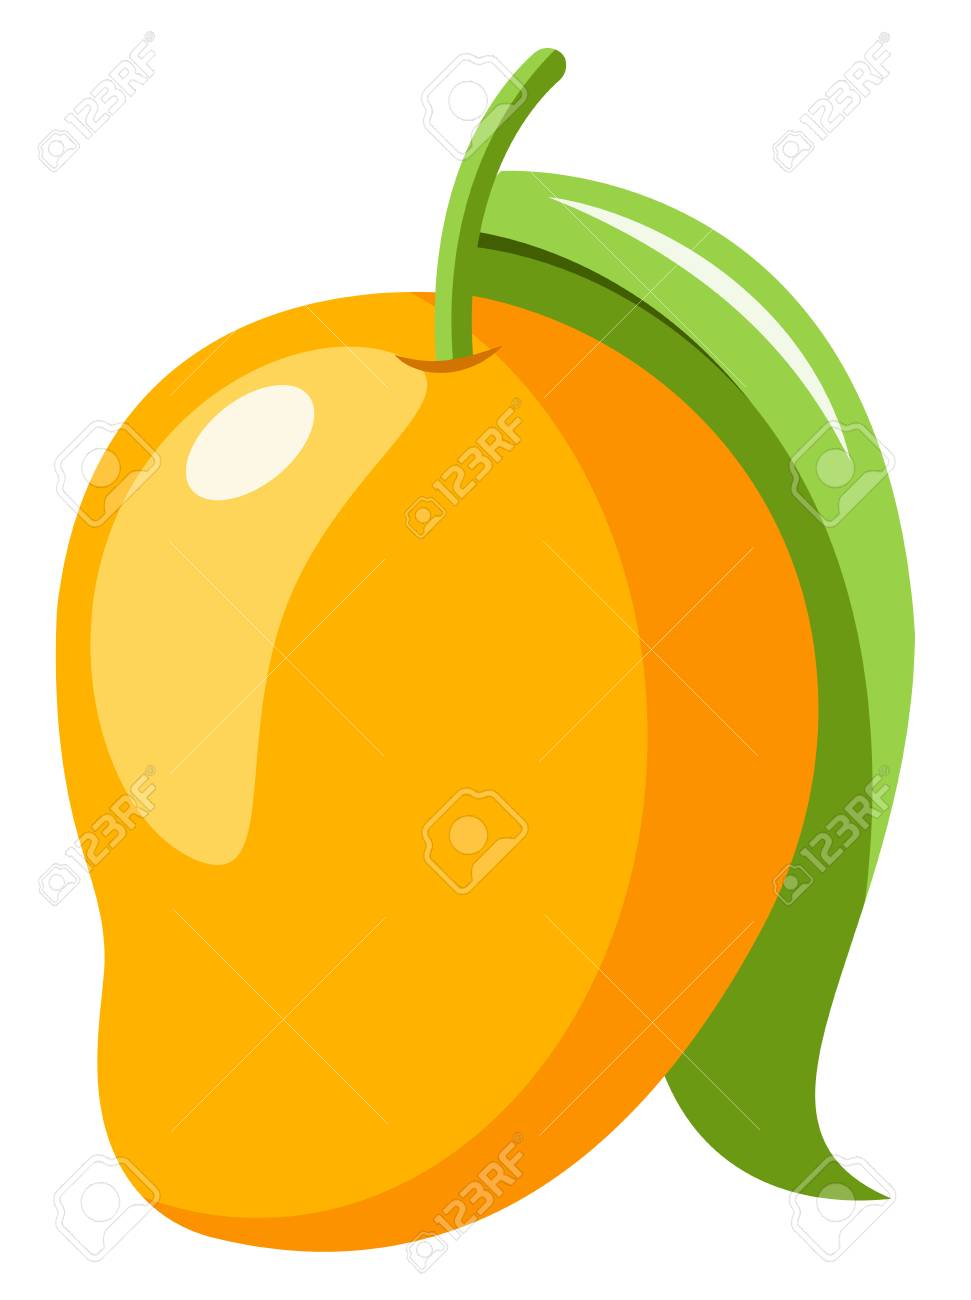 A Yellow Colored Mango With Green Leaf Vector Color Drawing Royalty Free Cliparts Vectors And Stock Illustration Image 120987316